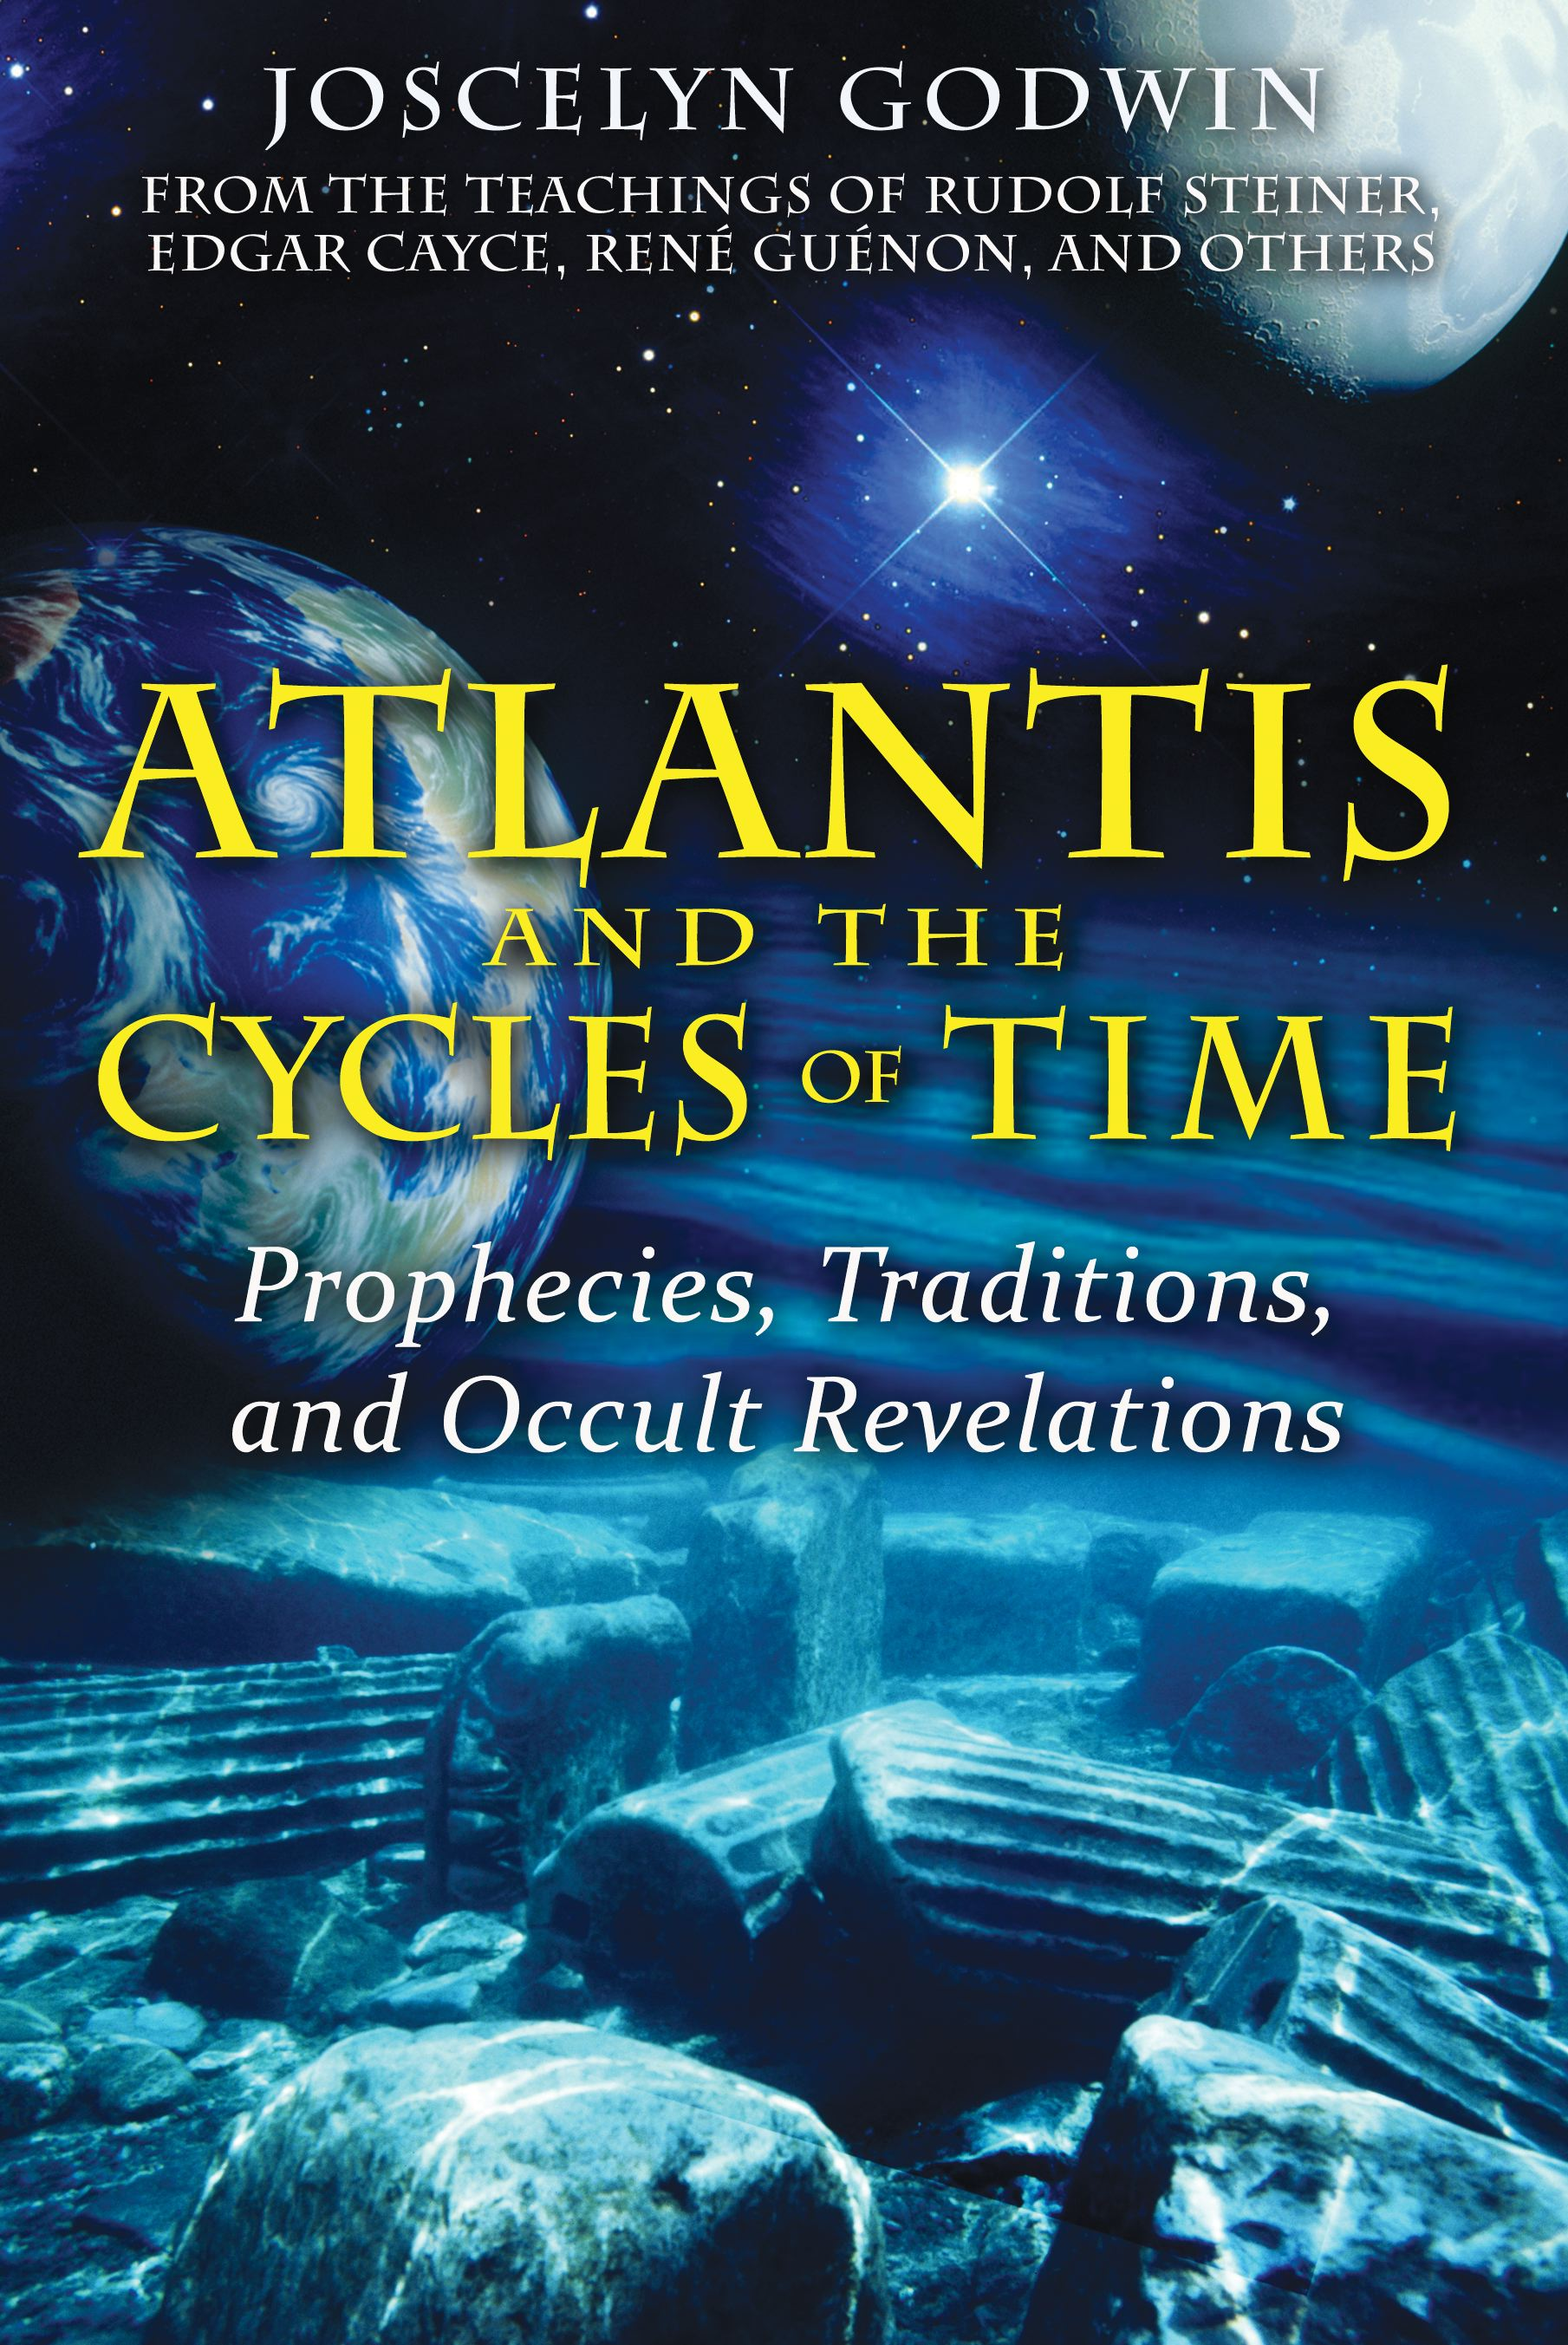 Atlantis and the cycles of time 9781594772627 hr